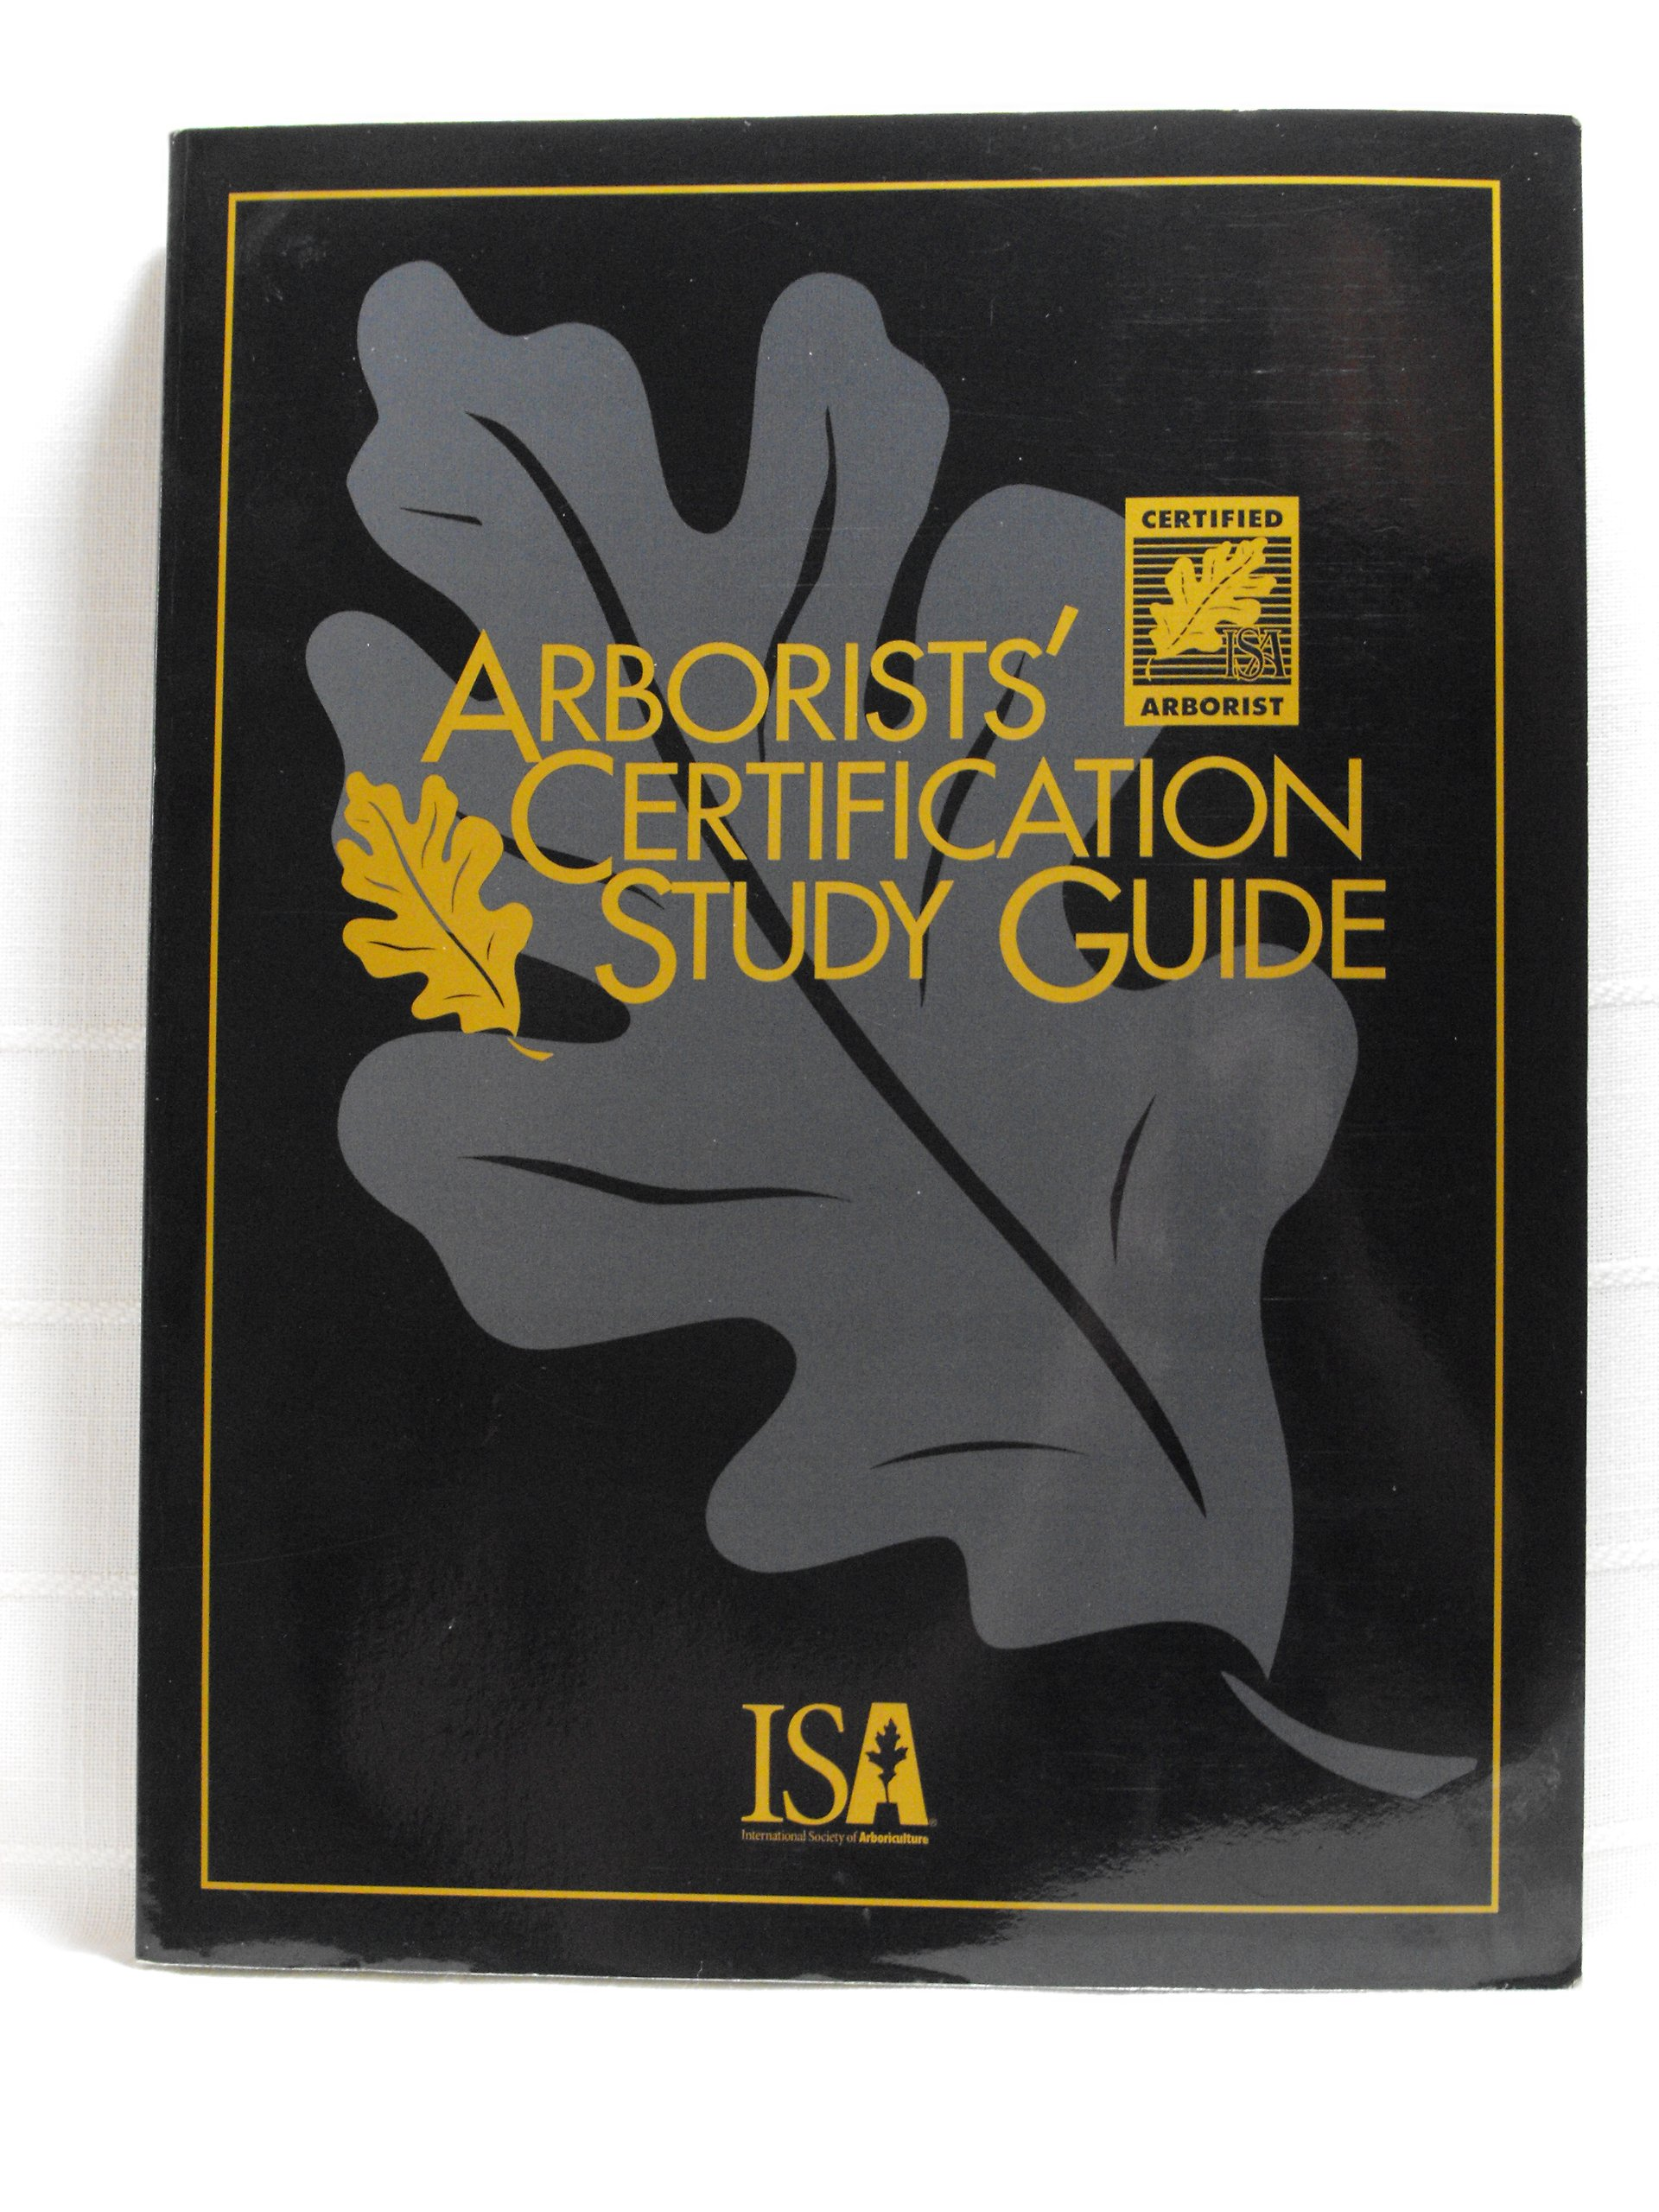 Arborists' Certification Study Guide: Sharon J. Lilly: 9781881956266:  Agriculture: Amazon Canada